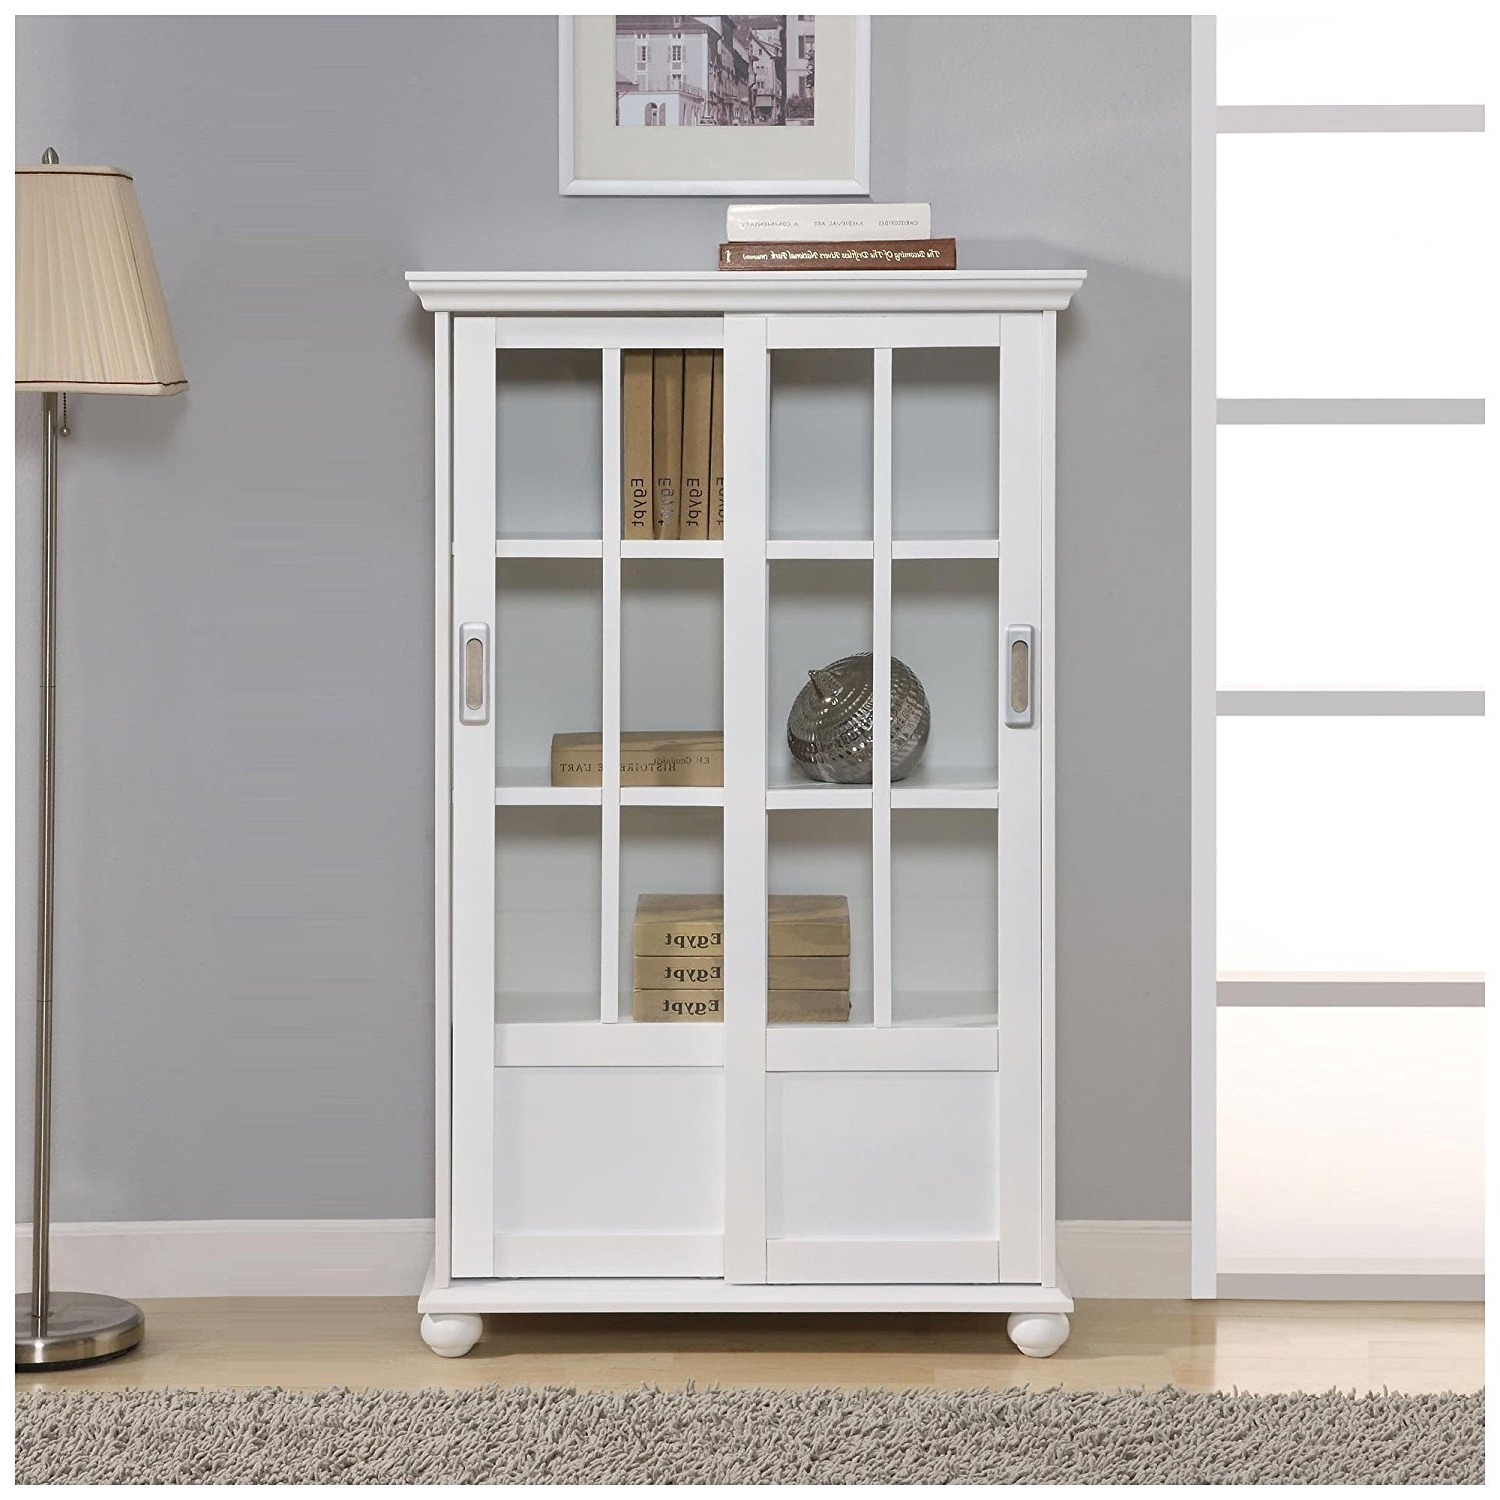 for bookcase great images idea furniture shelves sliding door ideas home incredible doors bookcases with